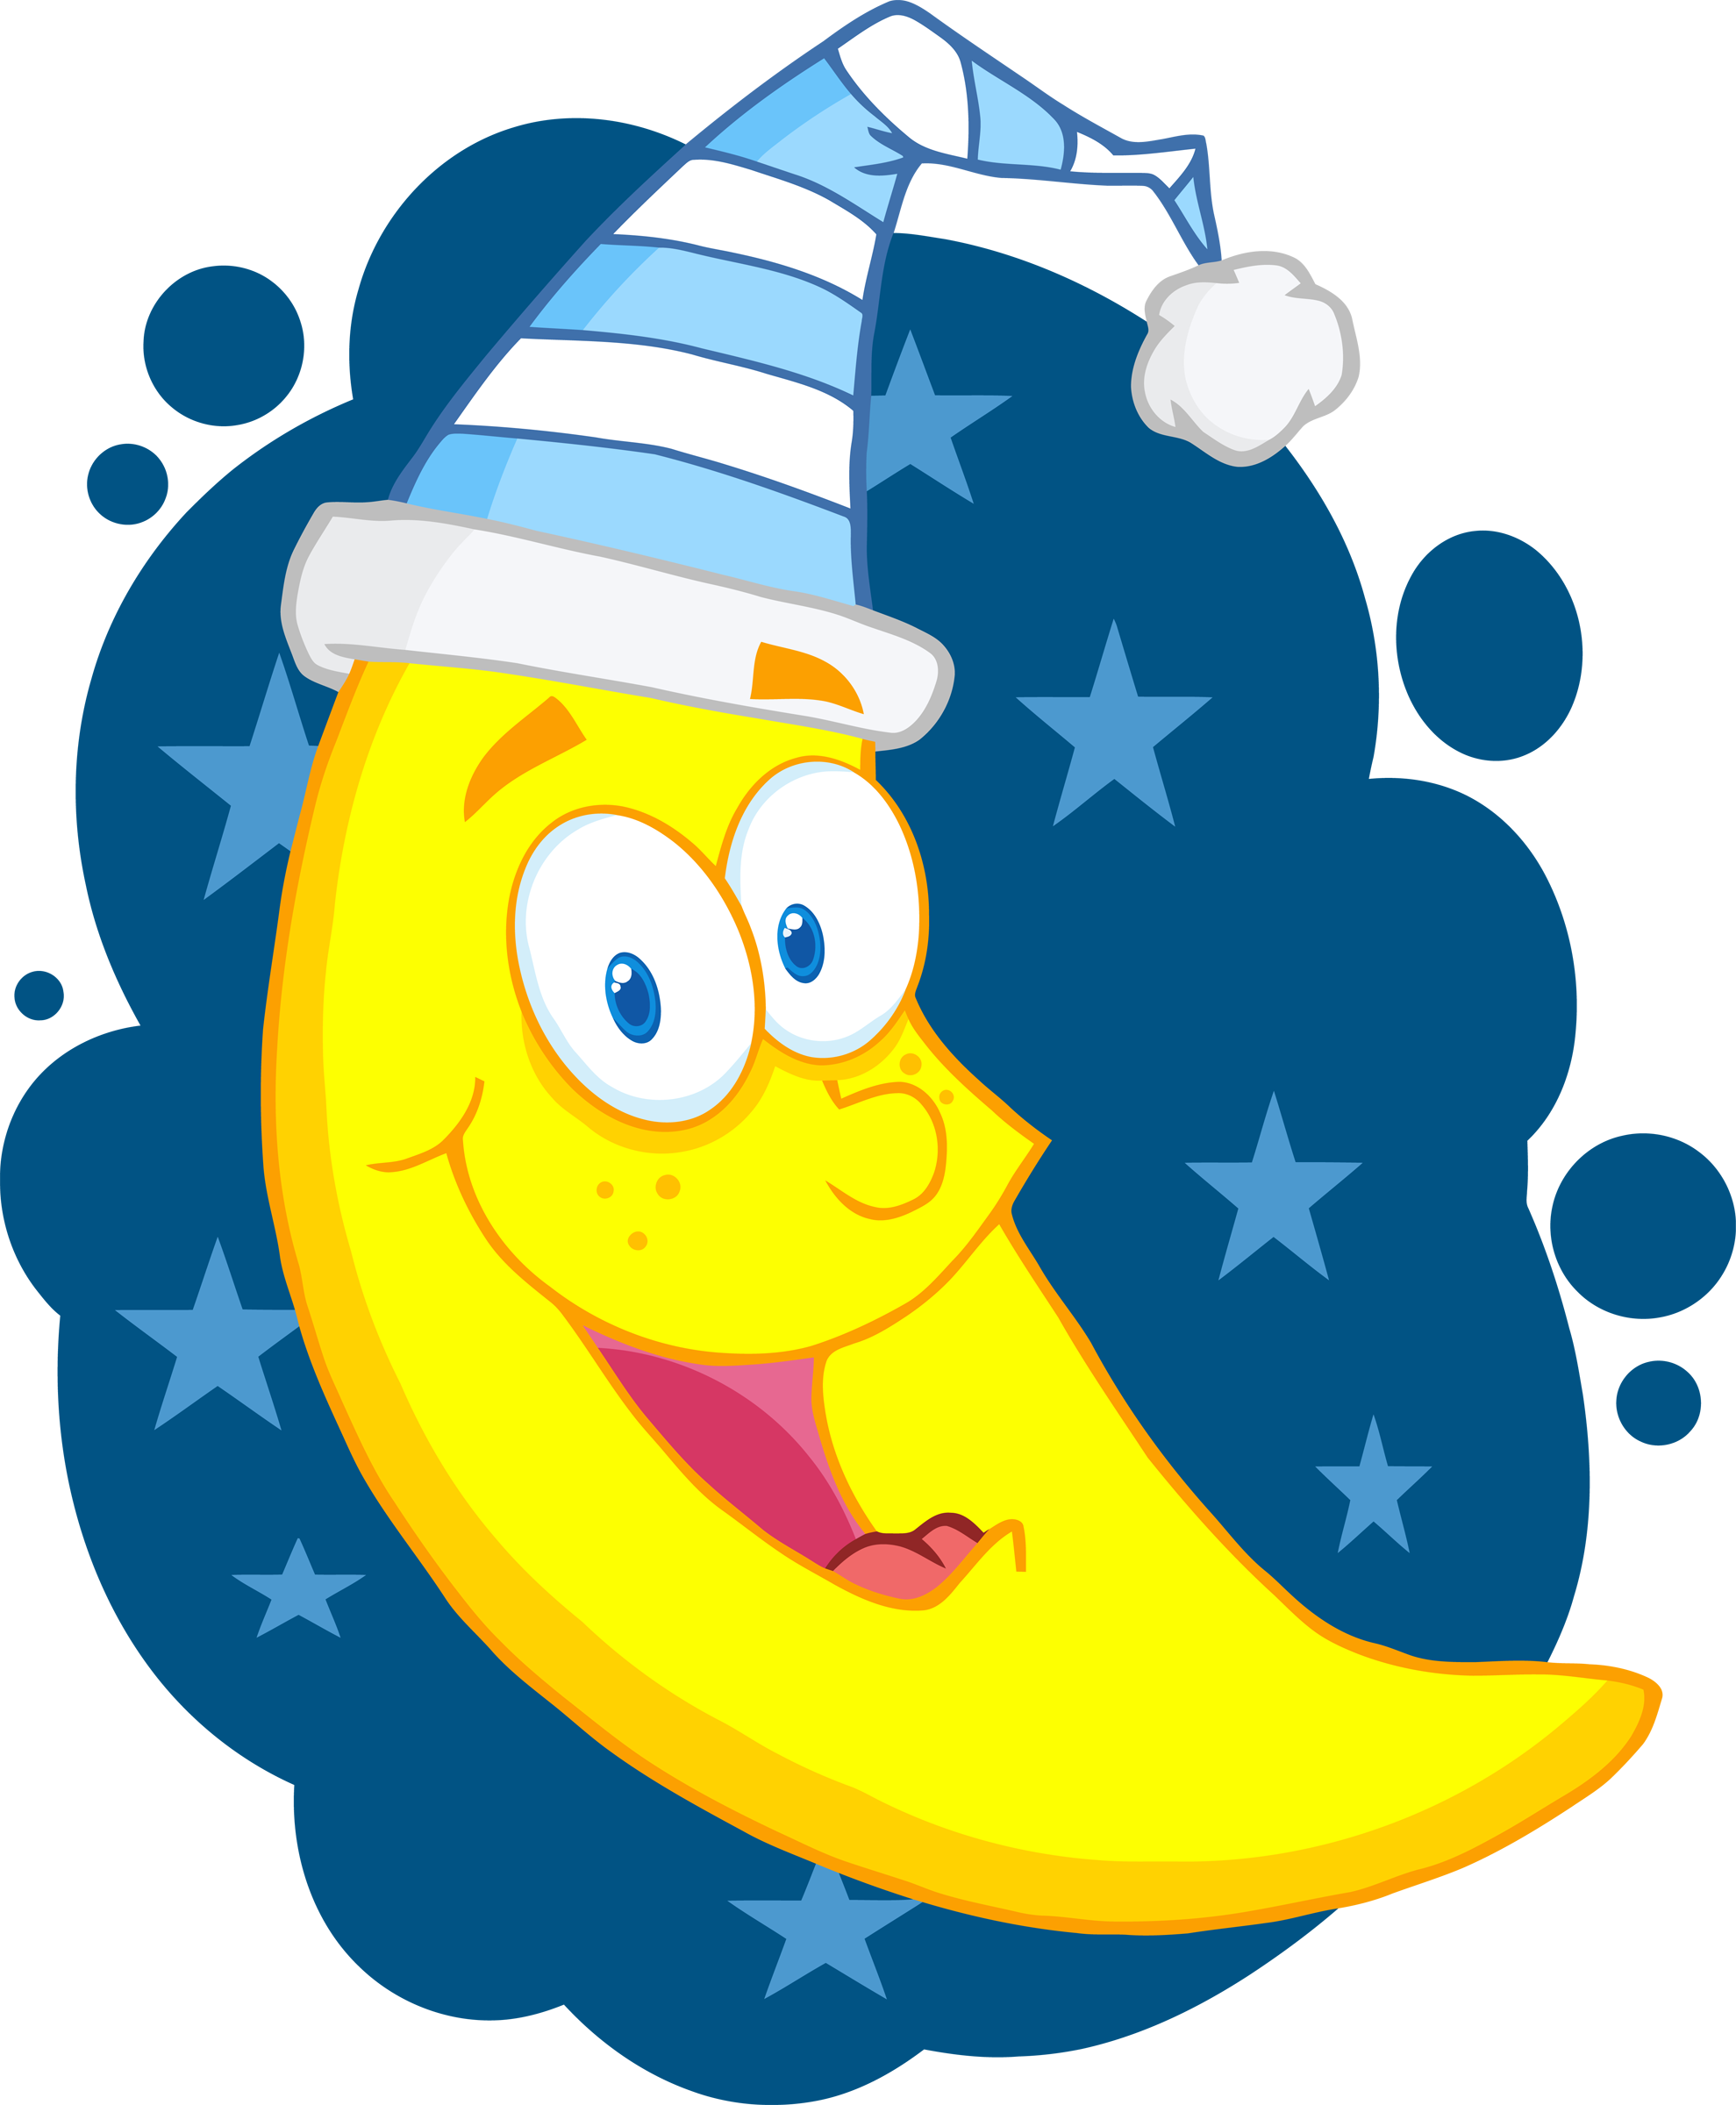 Happy moon clipart